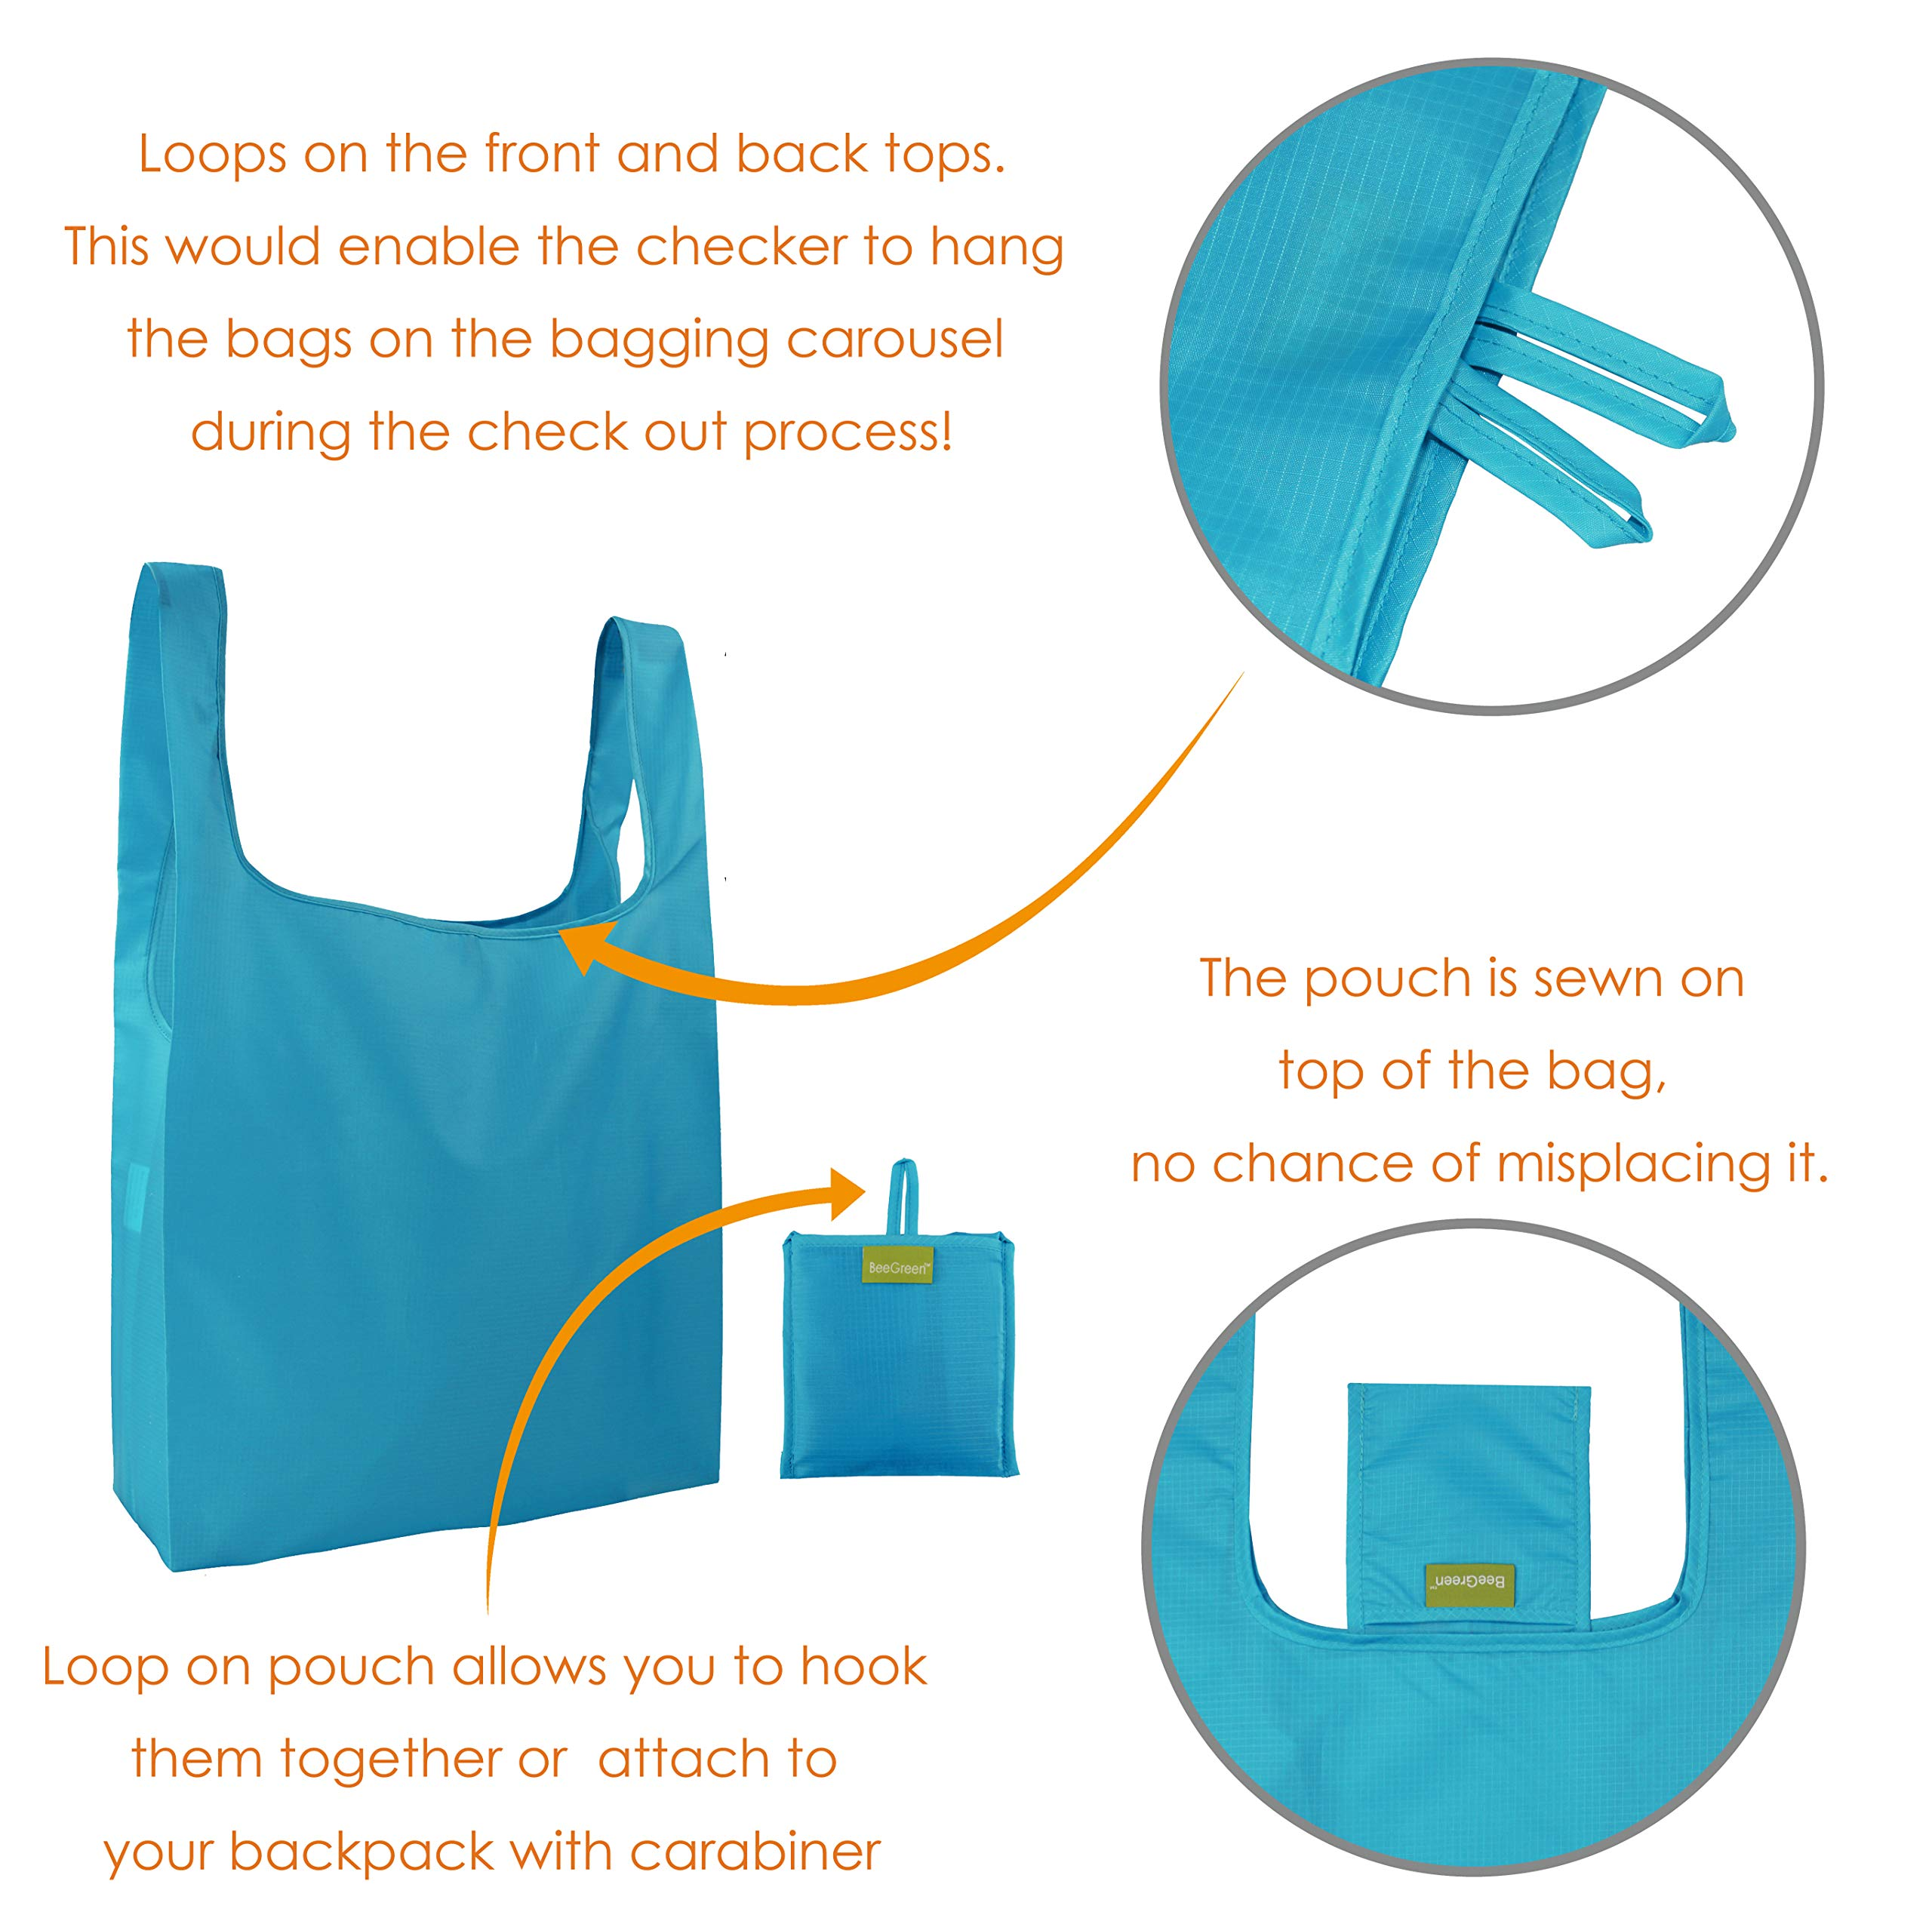 Reusable Grocery Bags Set of 5, Grocery Tote Foldable into Attached Pouch, Ripstop Polyester Reusable Shopping Bags, Washable, Durable and Lightweight (Royal,Purple,Pink,Orange,Teal) by BeeGreen (Image #7)